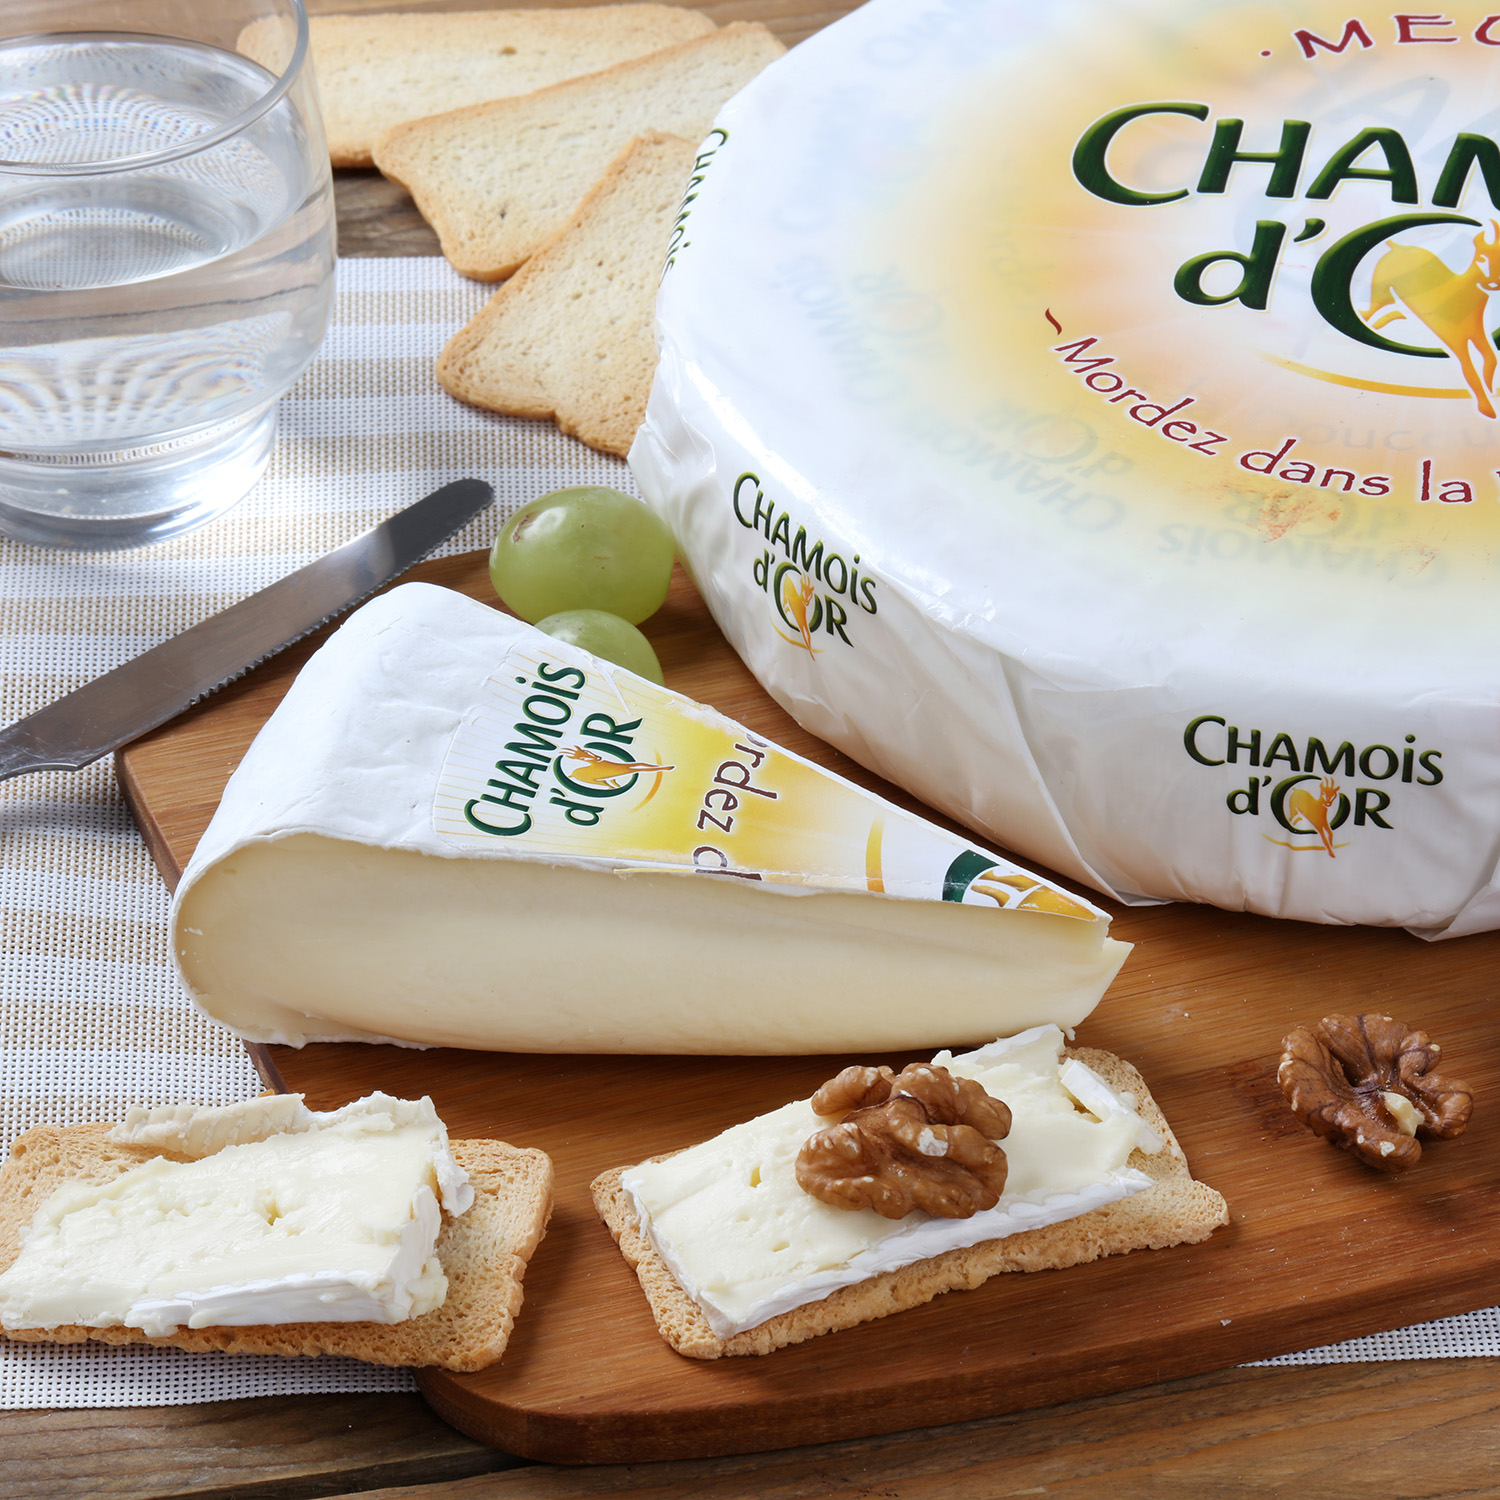 queso chamois d`or